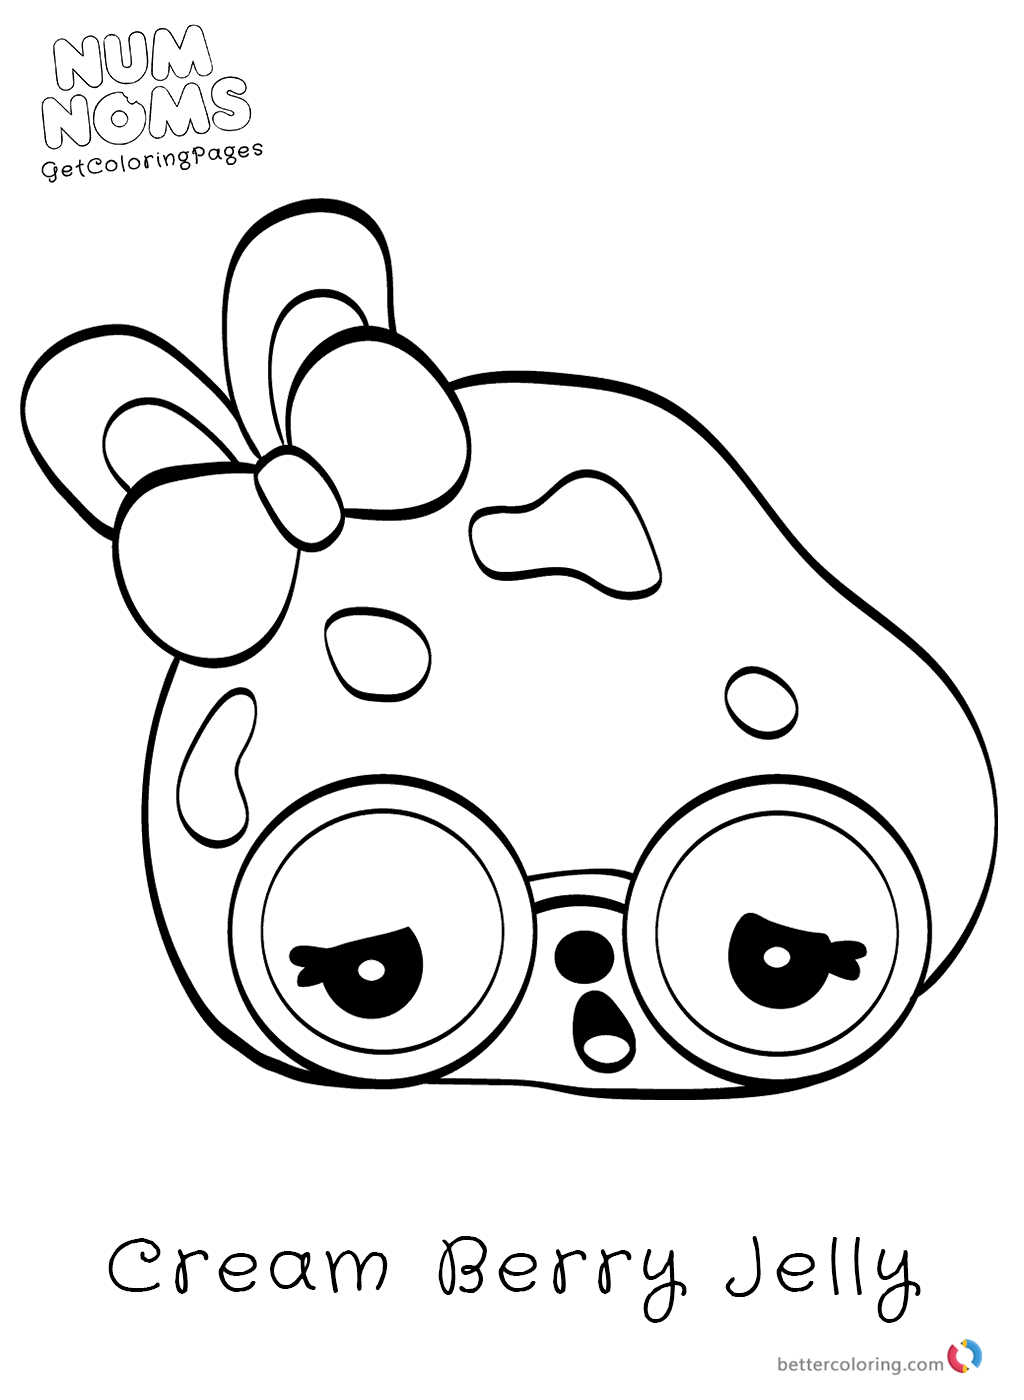 Num Noms Coloring Pages Printable